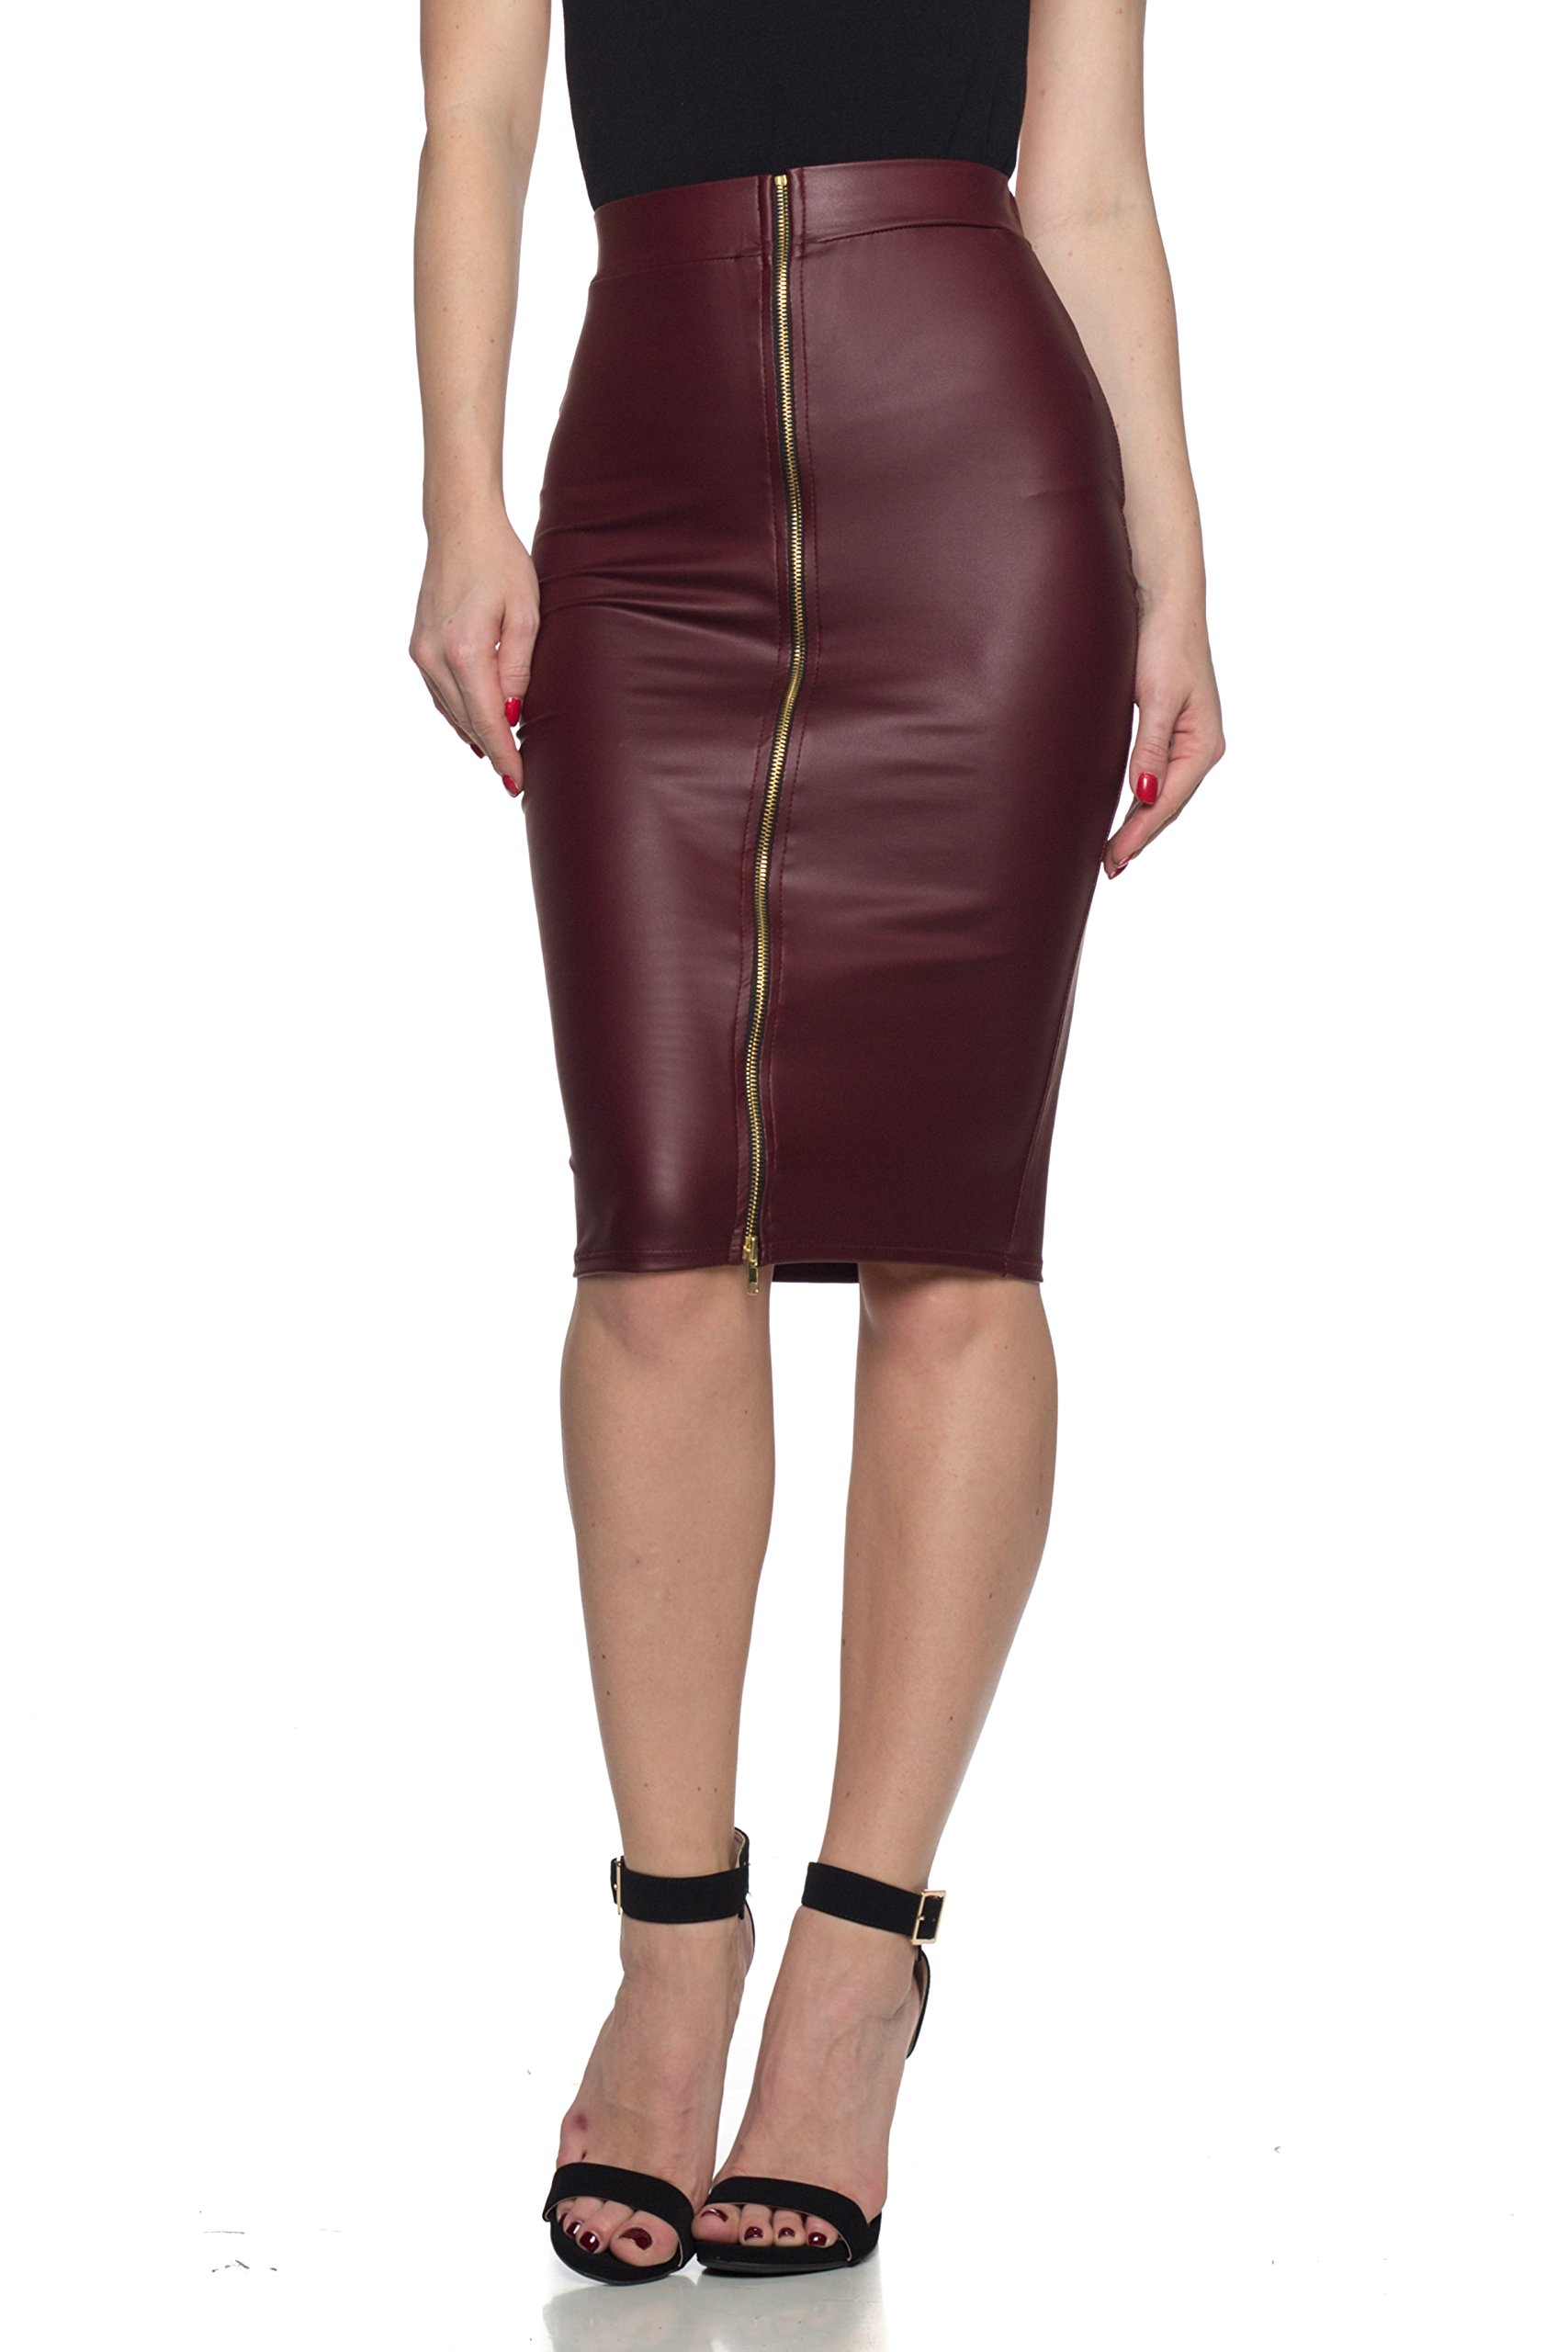 Women's J2 Love Faux Leather Zip Up Pencil Skirt, Small, Burgundy